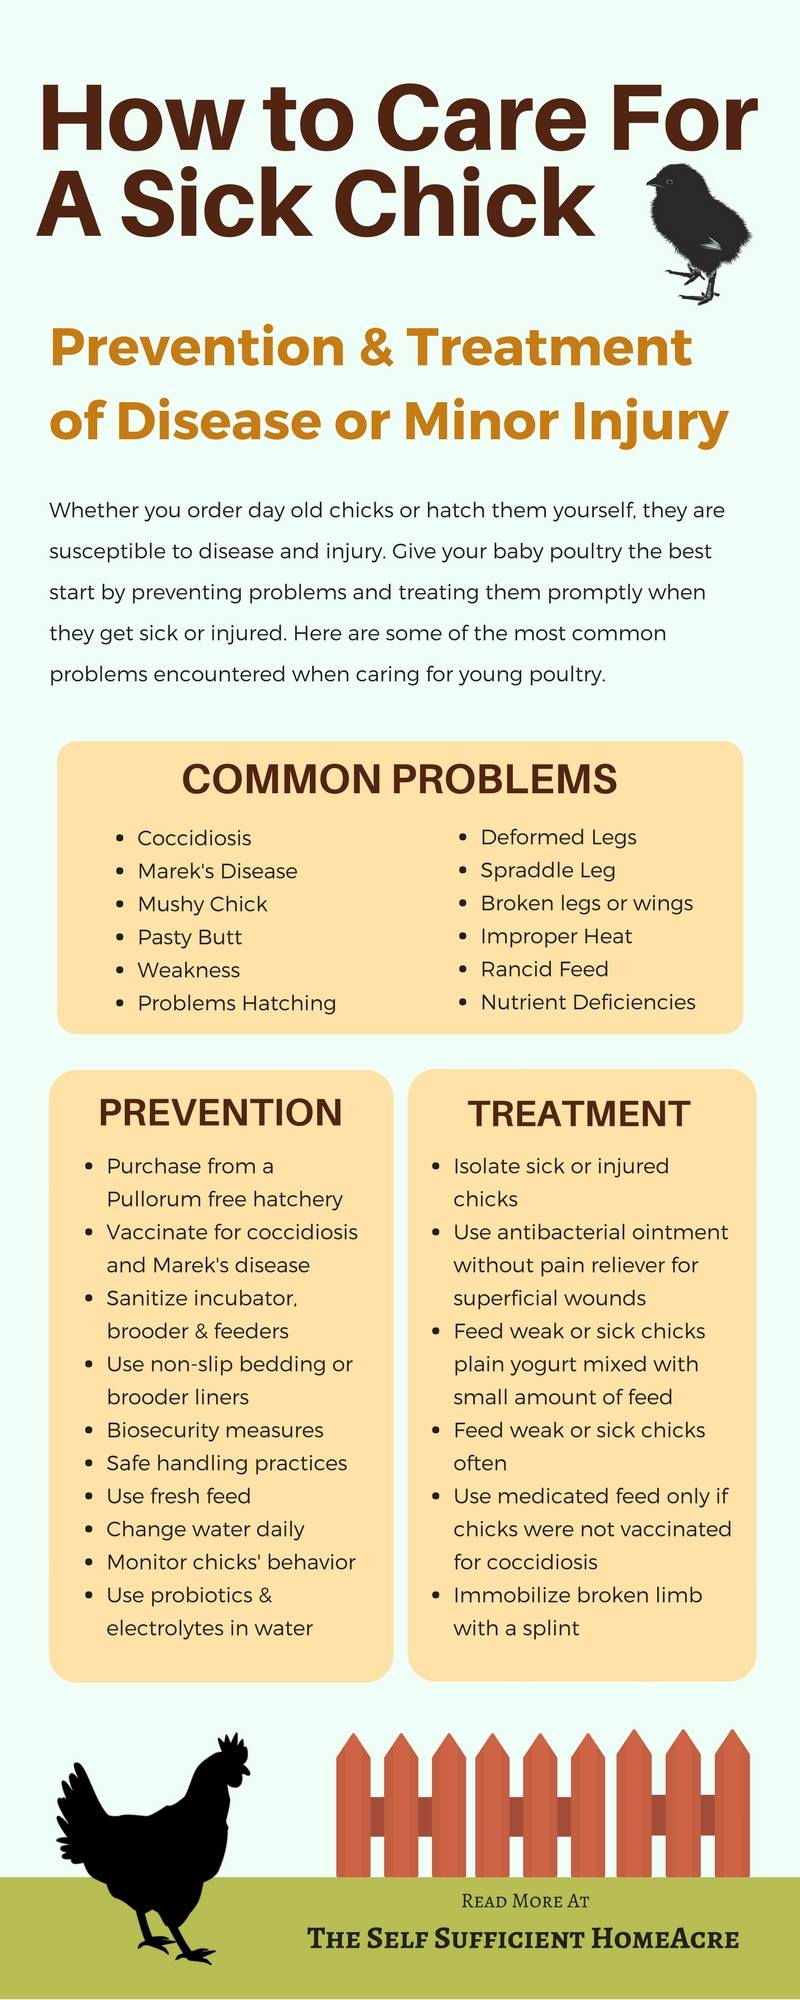 Sick or Injured Chick Infographic - The Self Sufficient HomeAcre